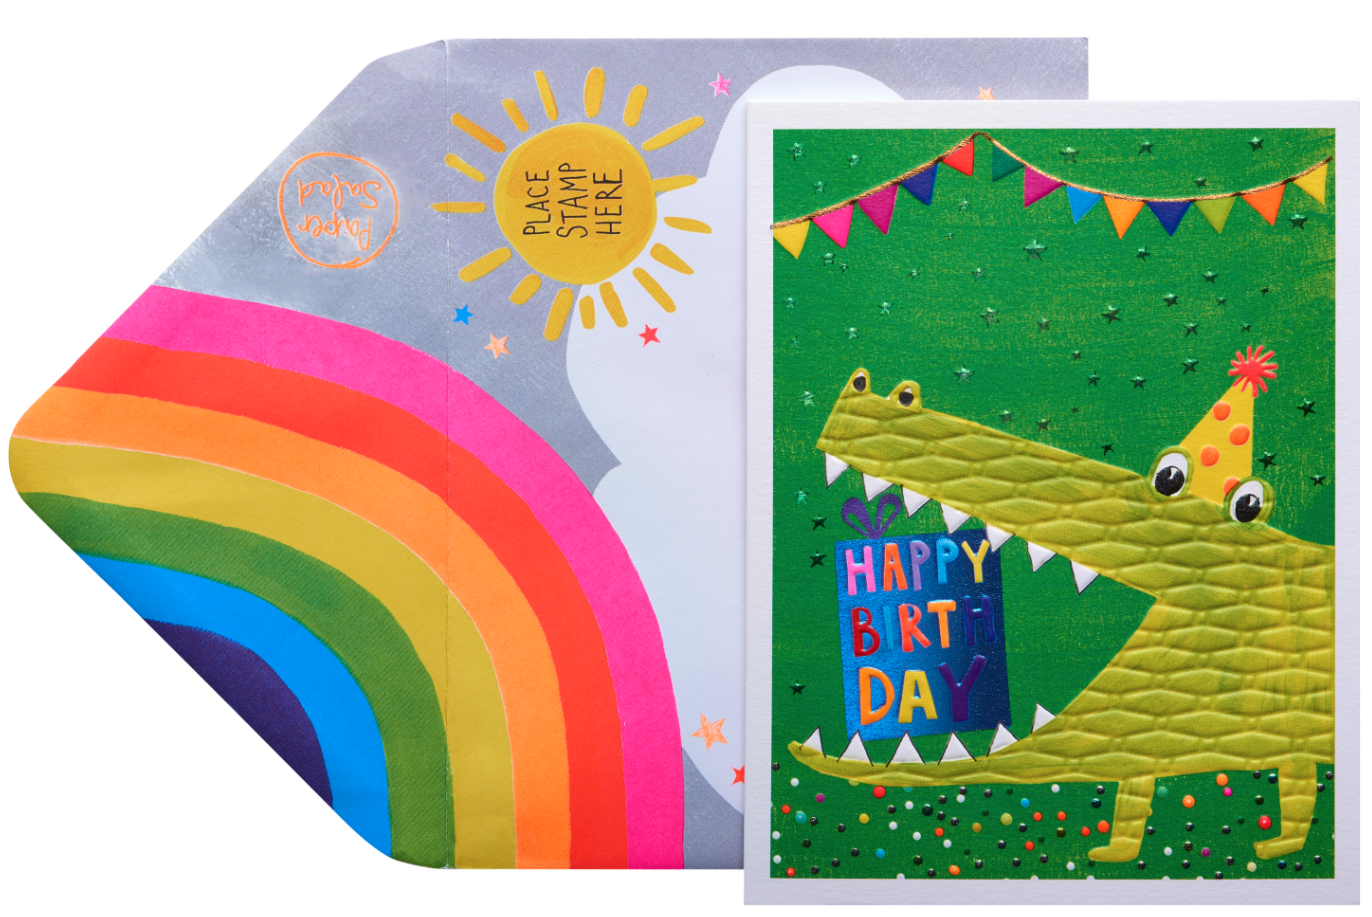 Above: Paper Salad's Jamboree design won the Children's Card award.